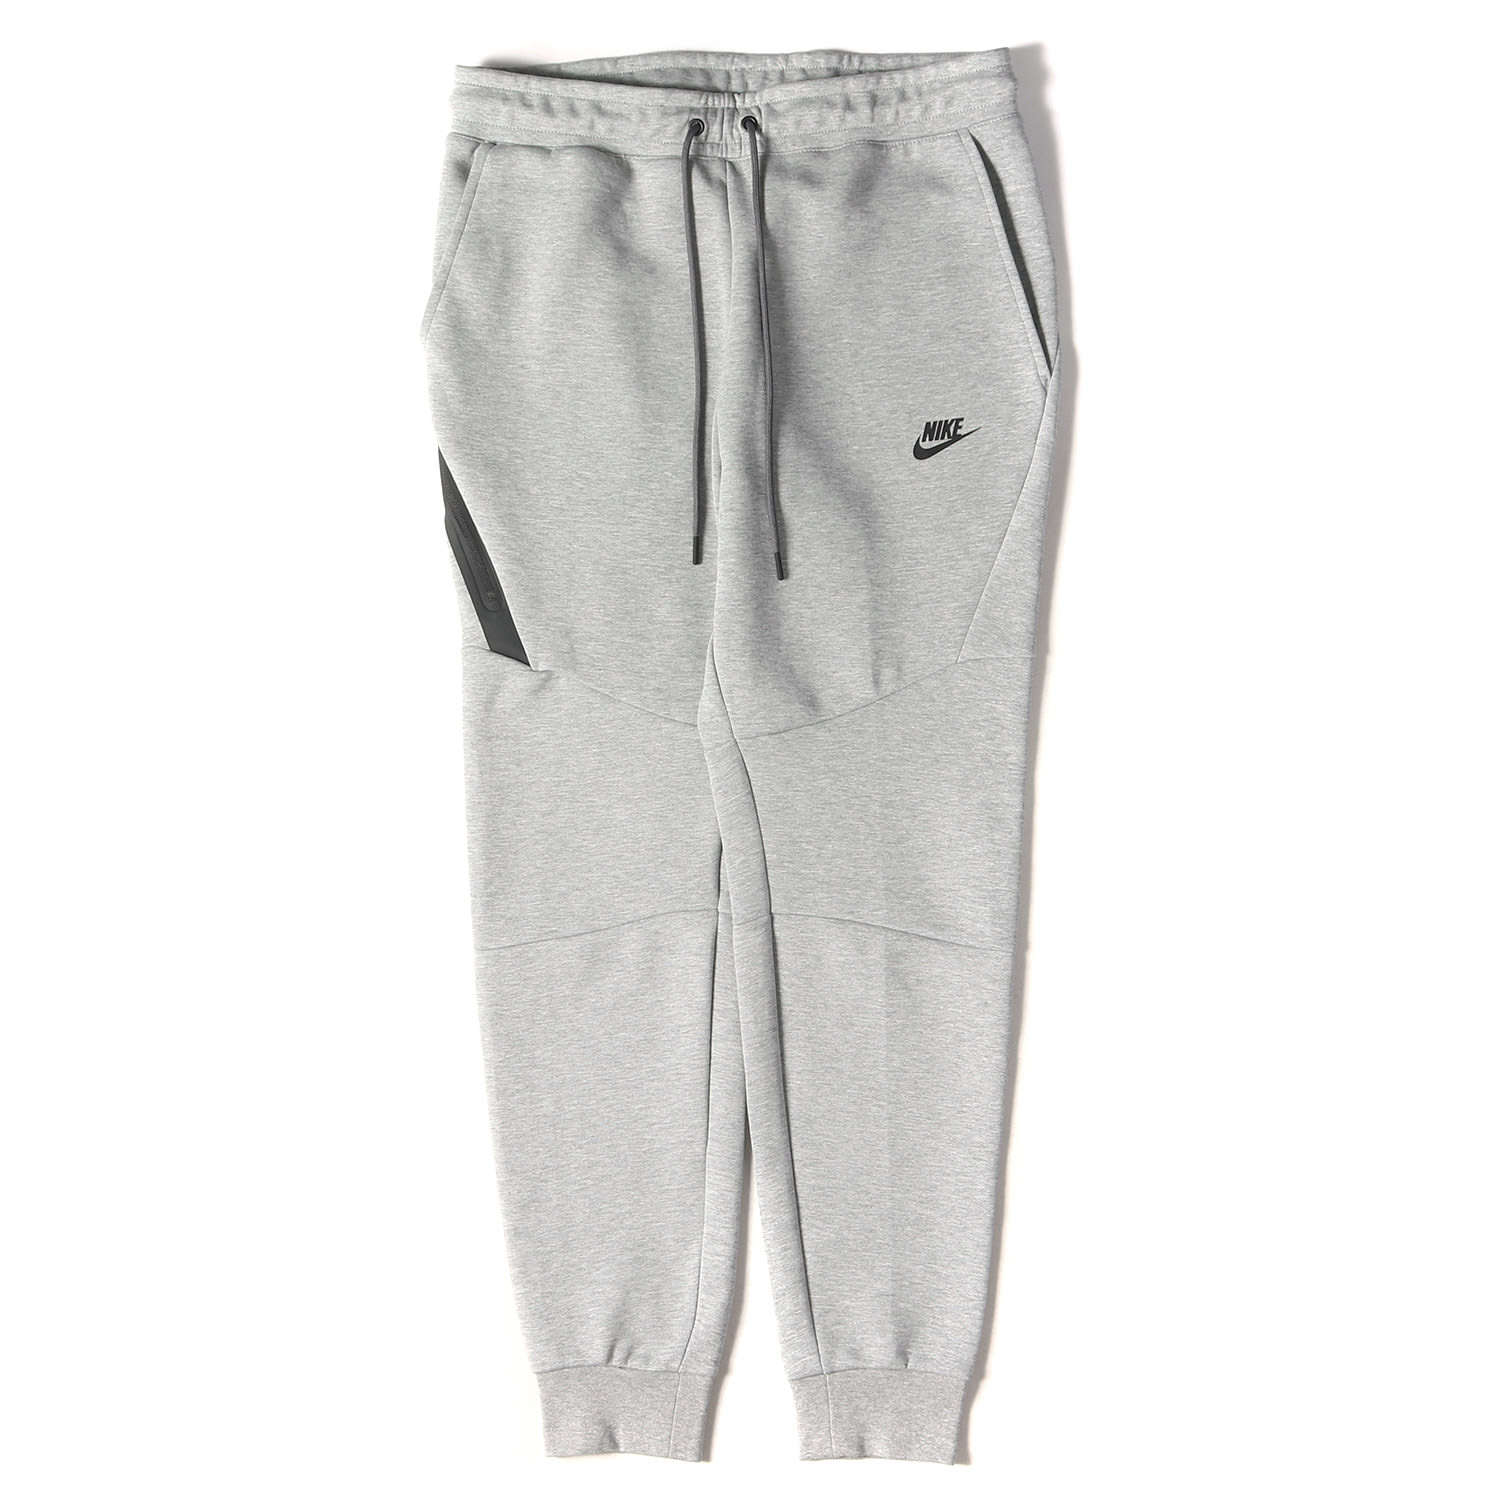 Kly Pants Plant Daddy Youth Sweatpants Athletic Sweatpants Jogger Sweatpant